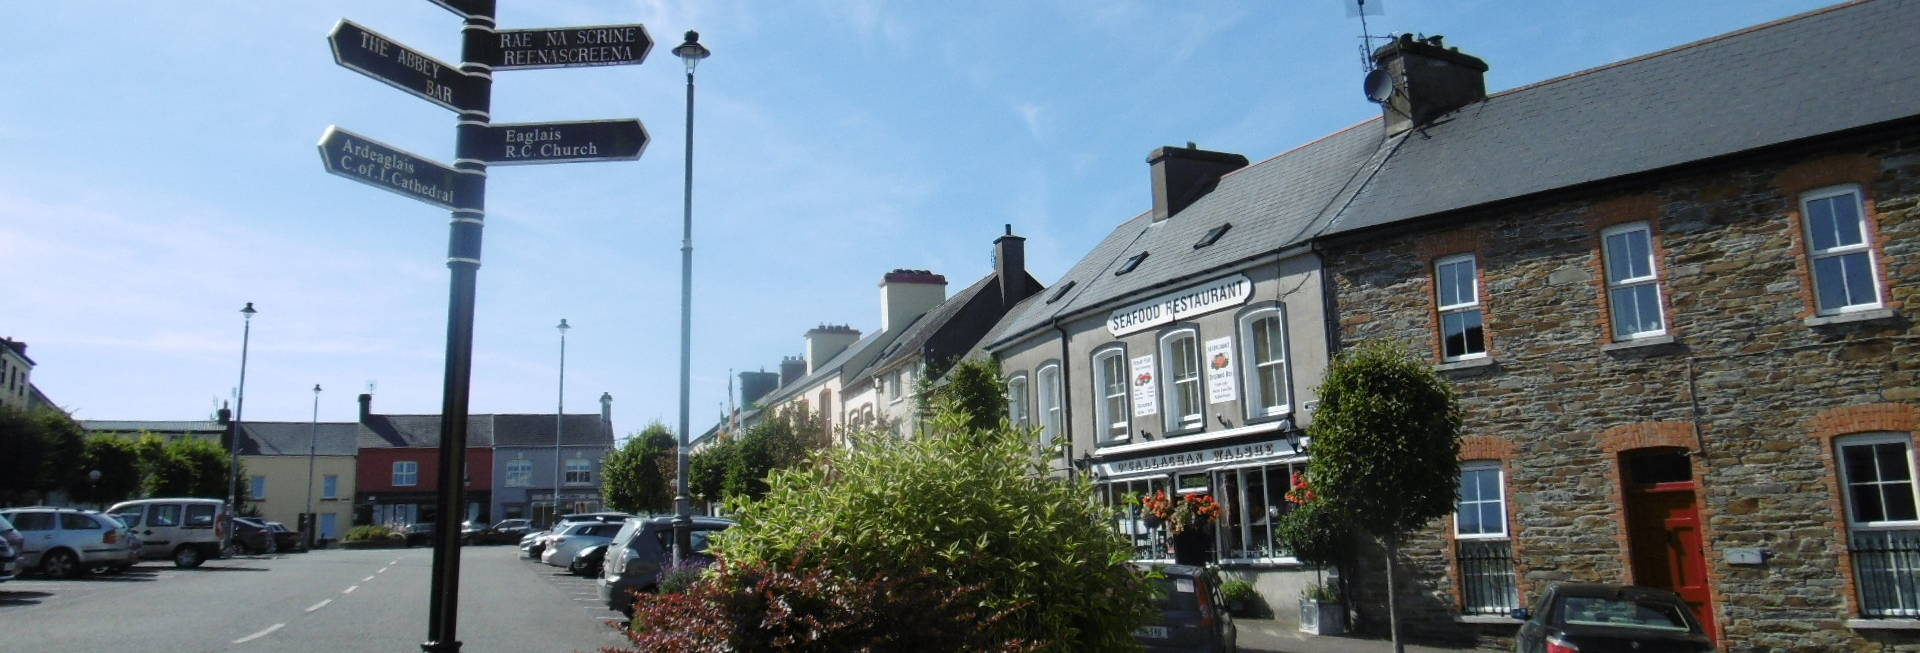 Rosscarbery Village Square West Cork